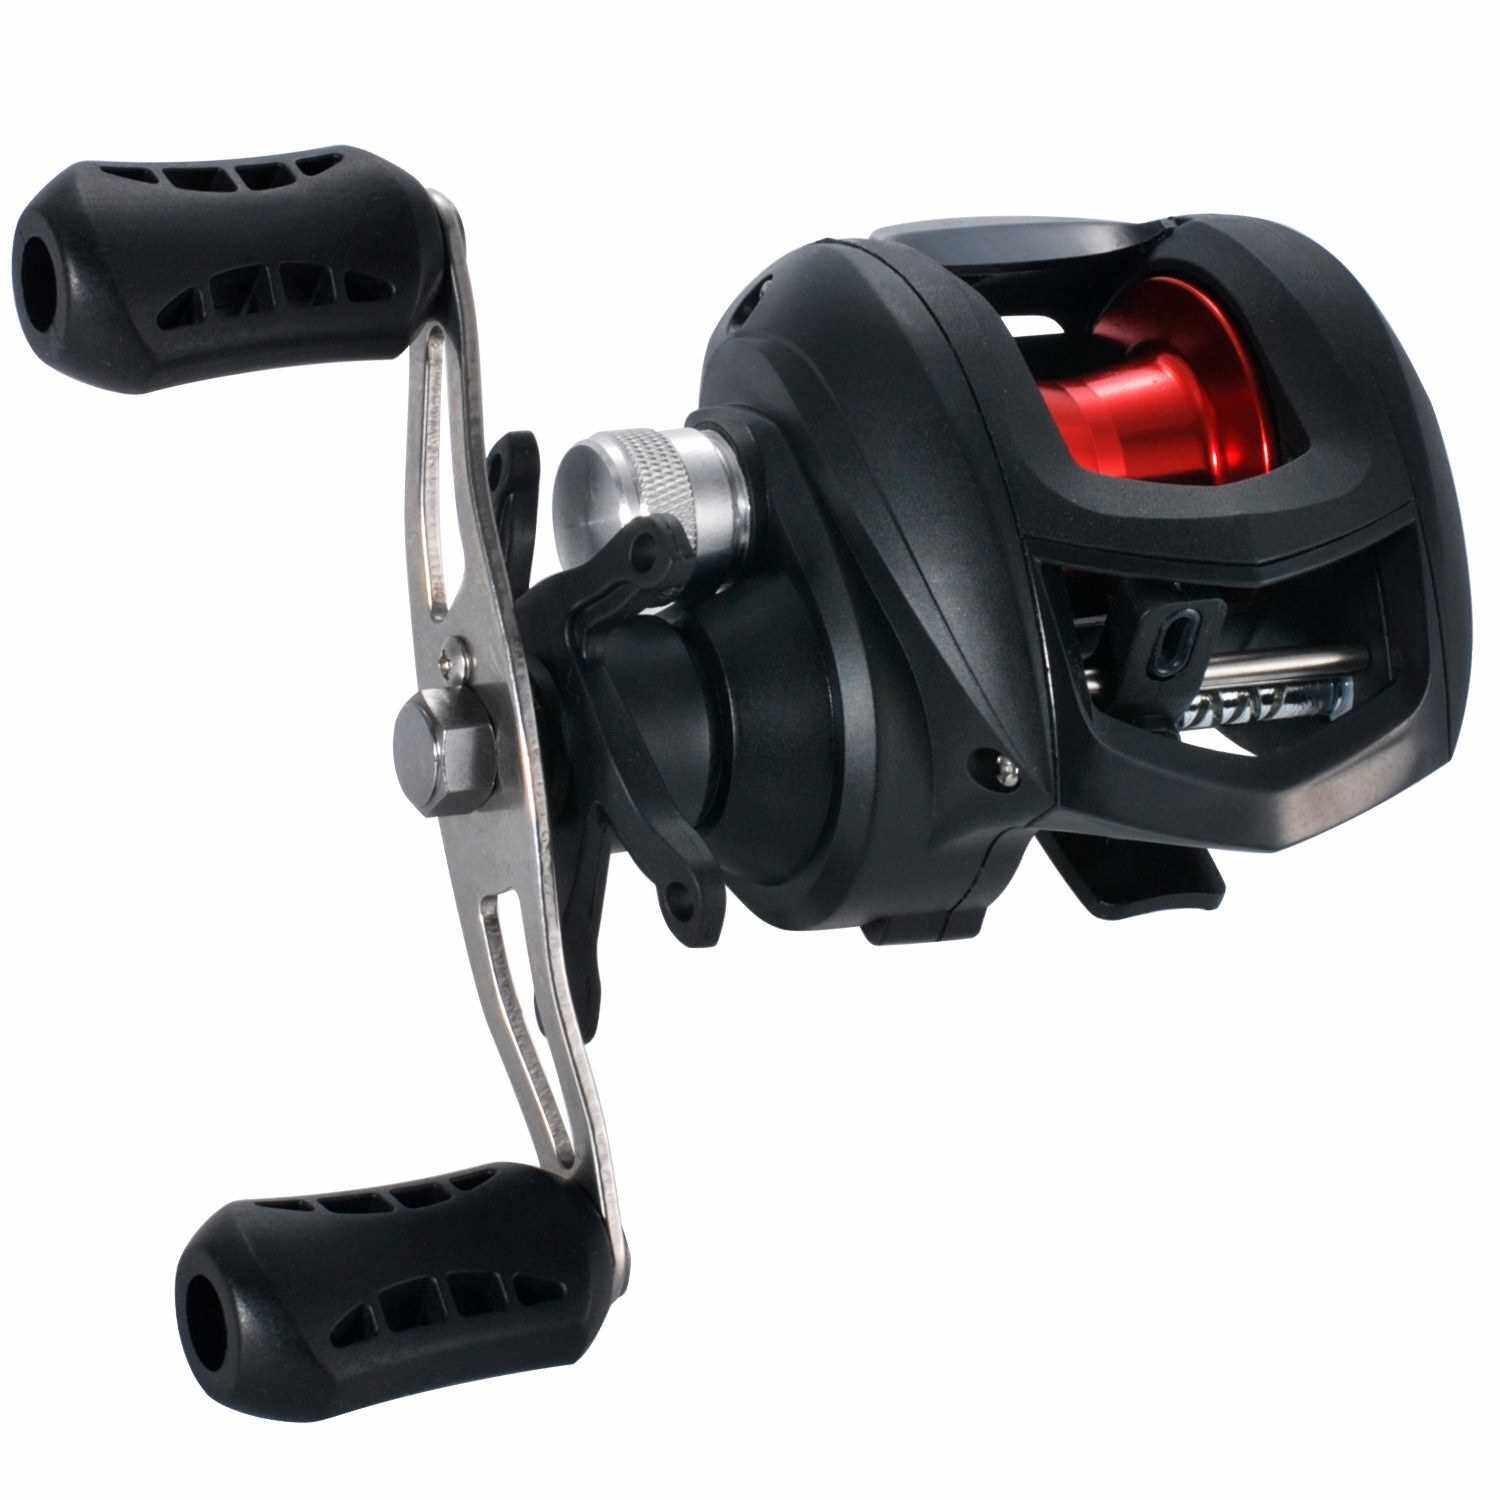 Best Selling High Speed 7.2:1 Gear Ratio Baitcast Fishing Reel 17+1 Ball Bearings Baitcasting Fishing Reel Baitcaster Tackle (R)